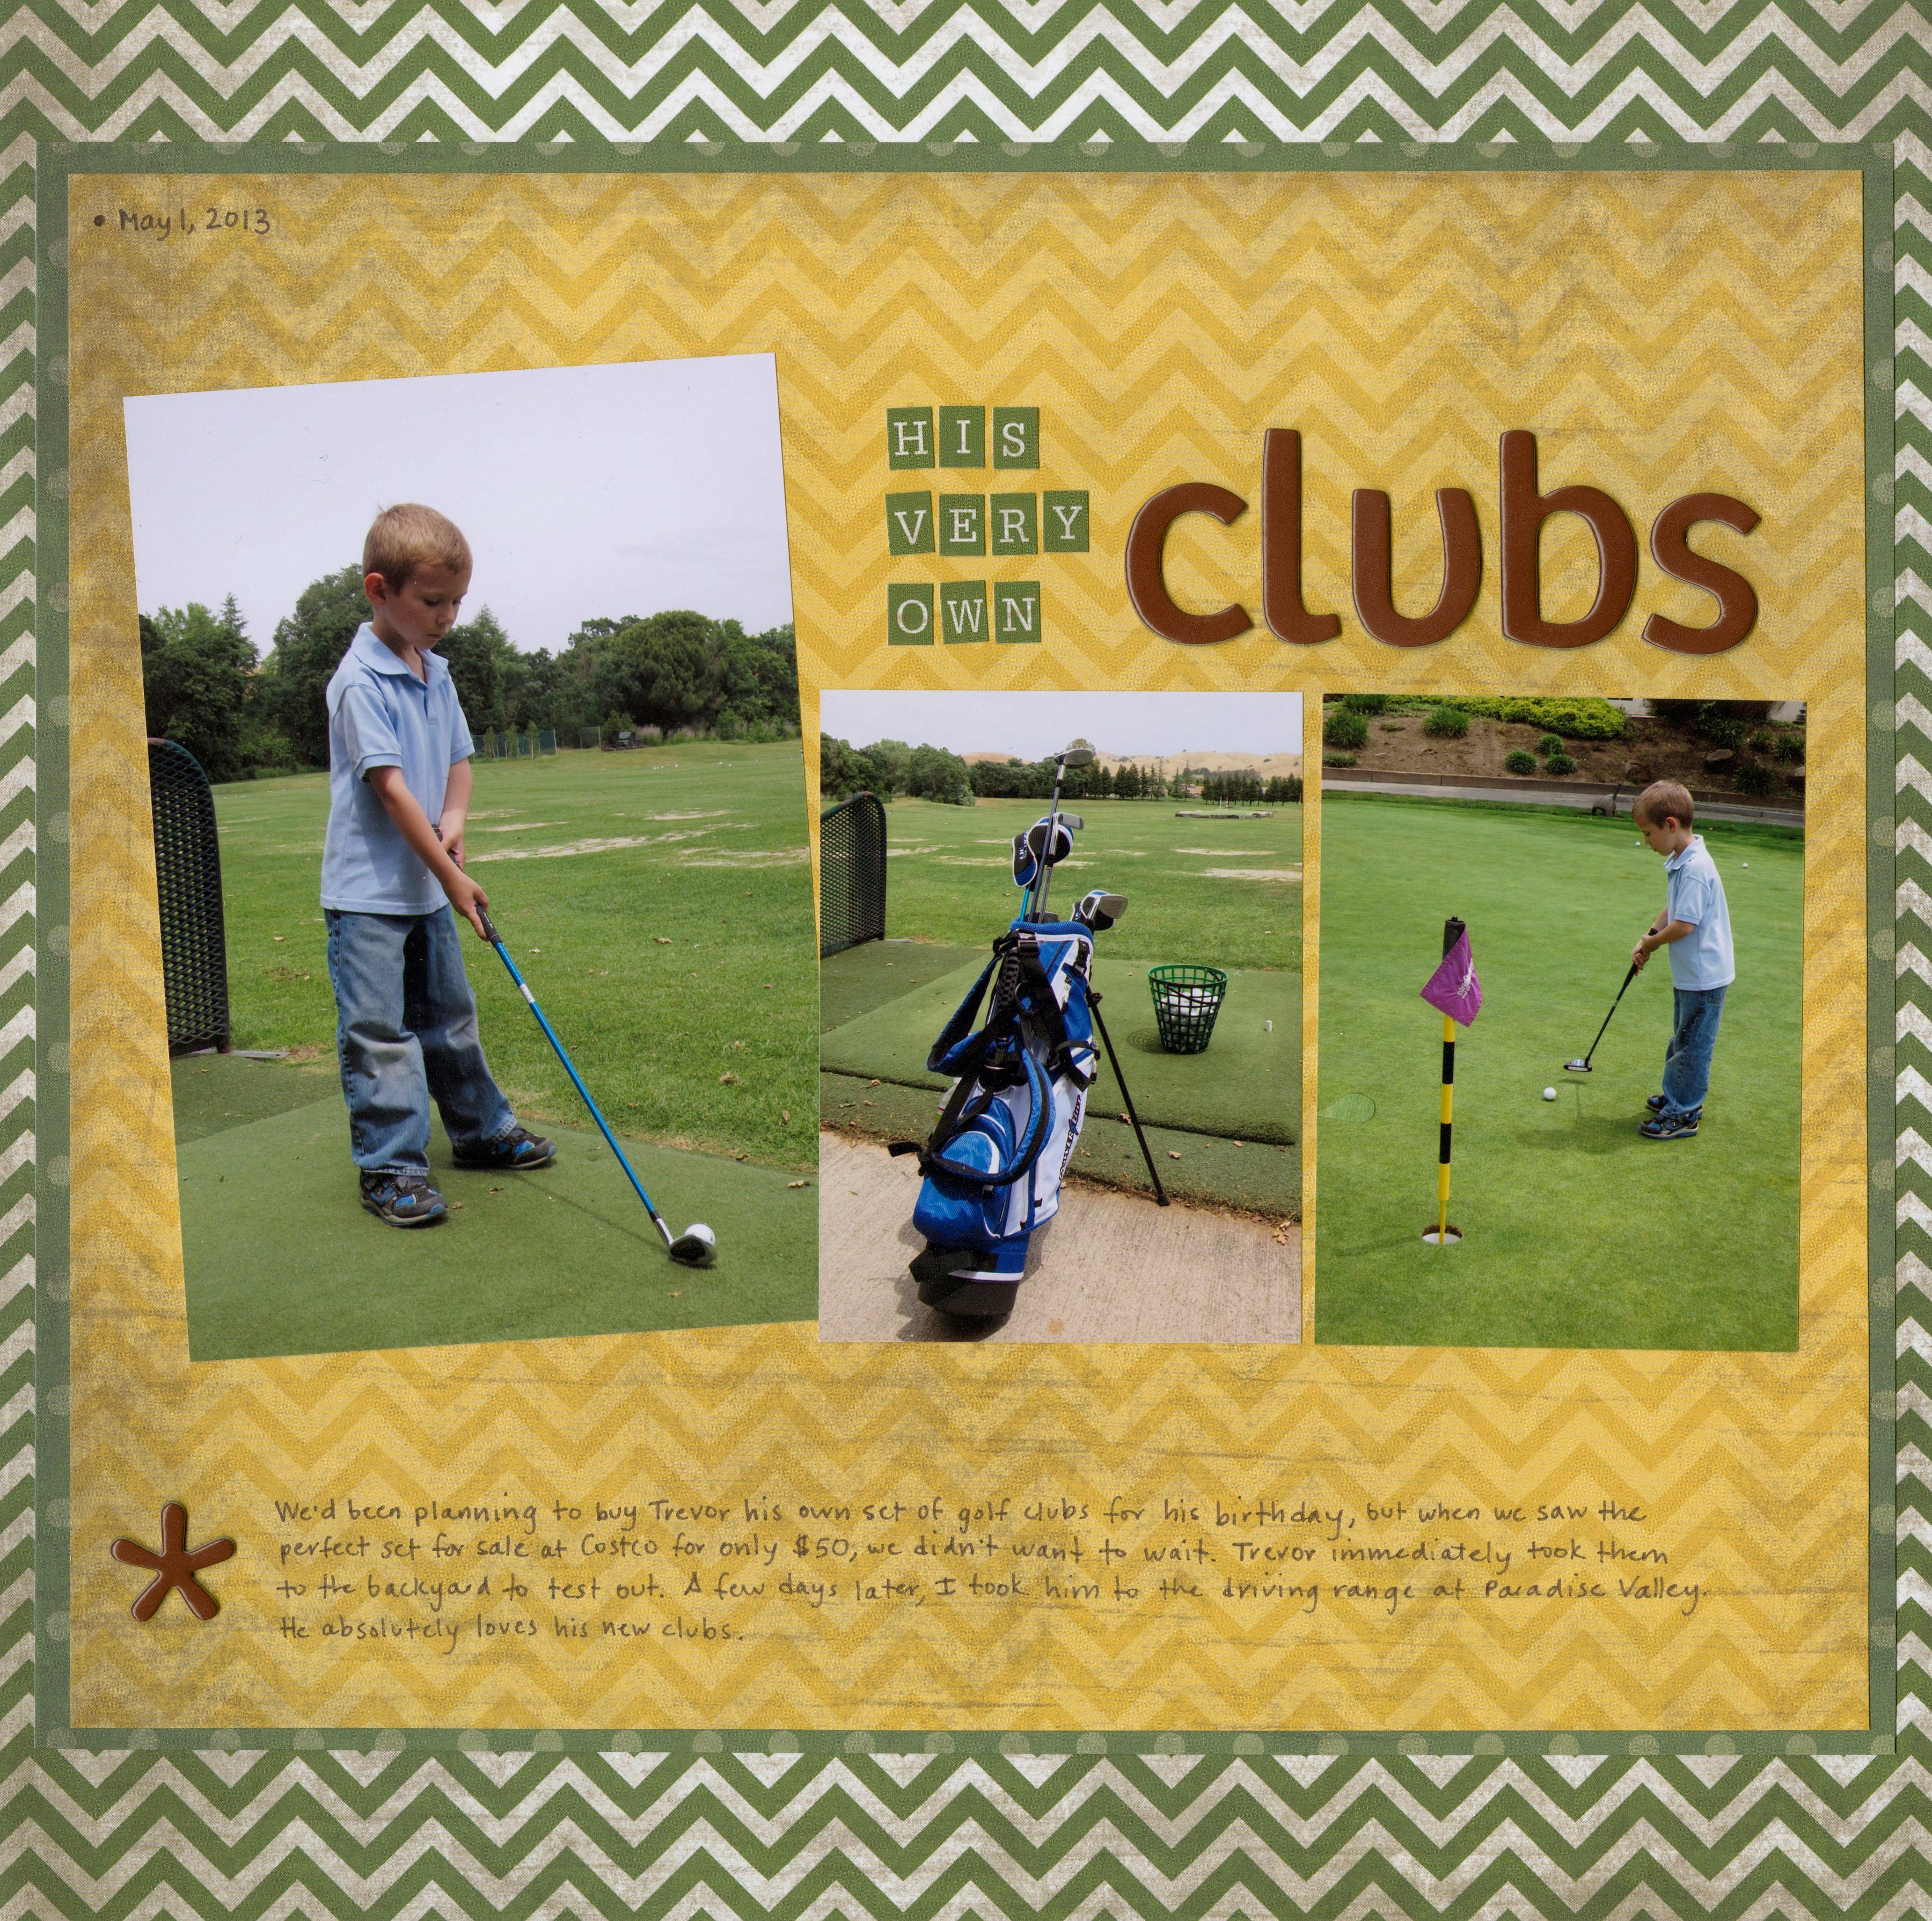 His Very Own Clubs - Scrapbook.com